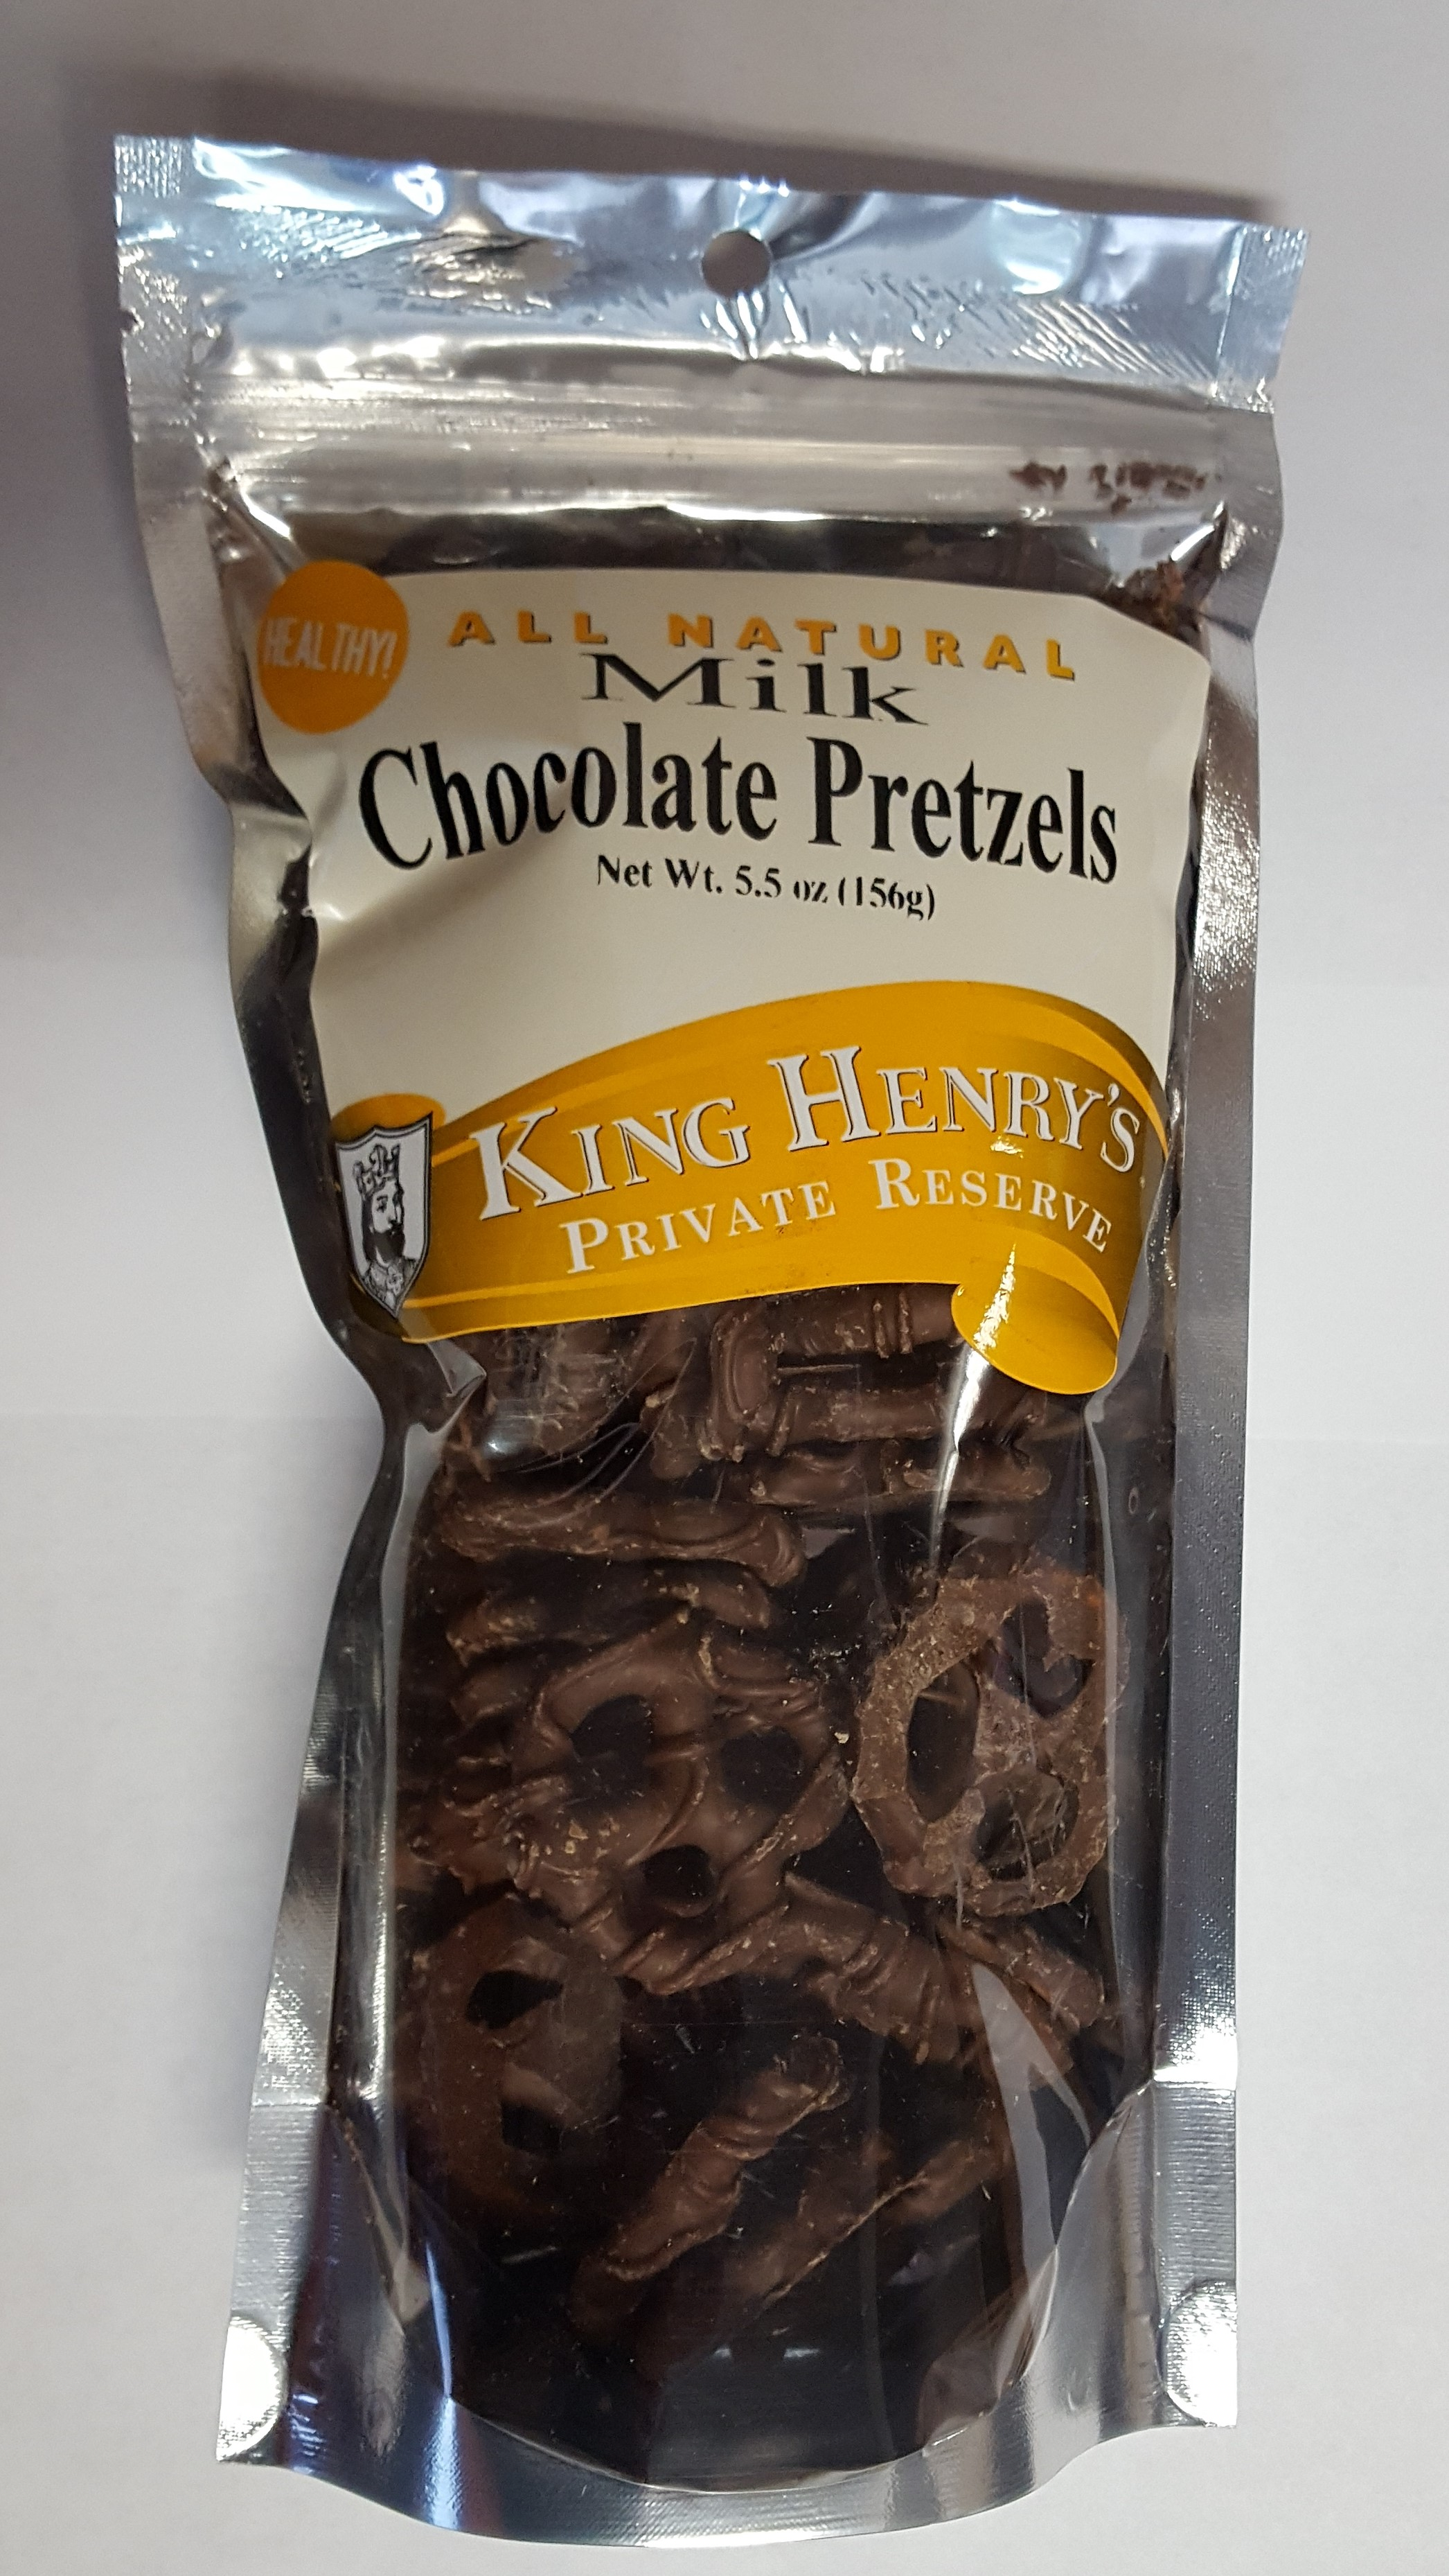 King Henry's Natural Milk Chocolate Pretzels